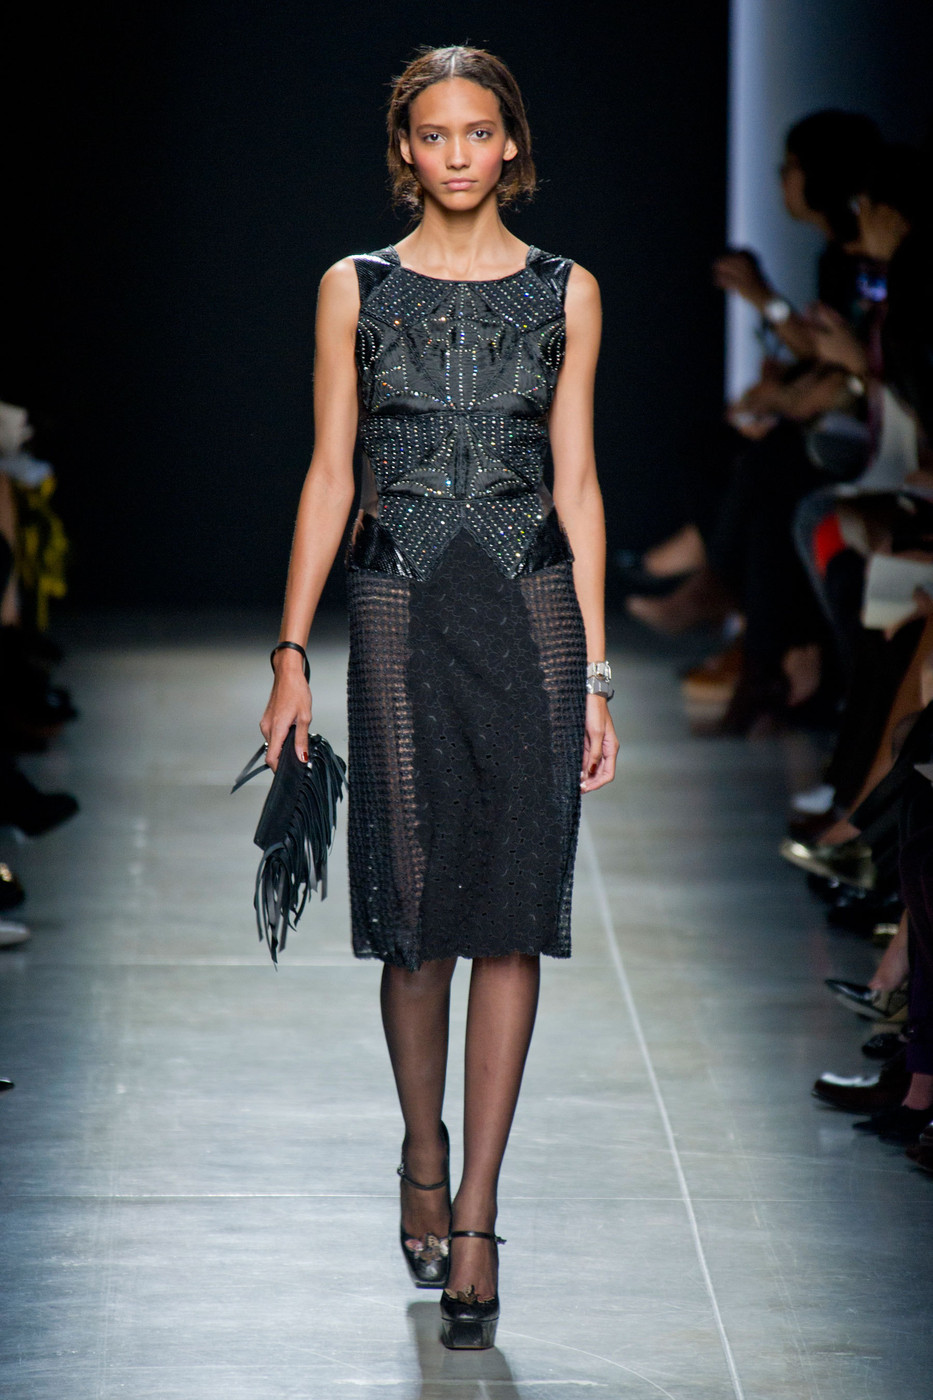 Borse Bottega Veneta 2013 : Bottega veneta at milan fashion week spring livingly